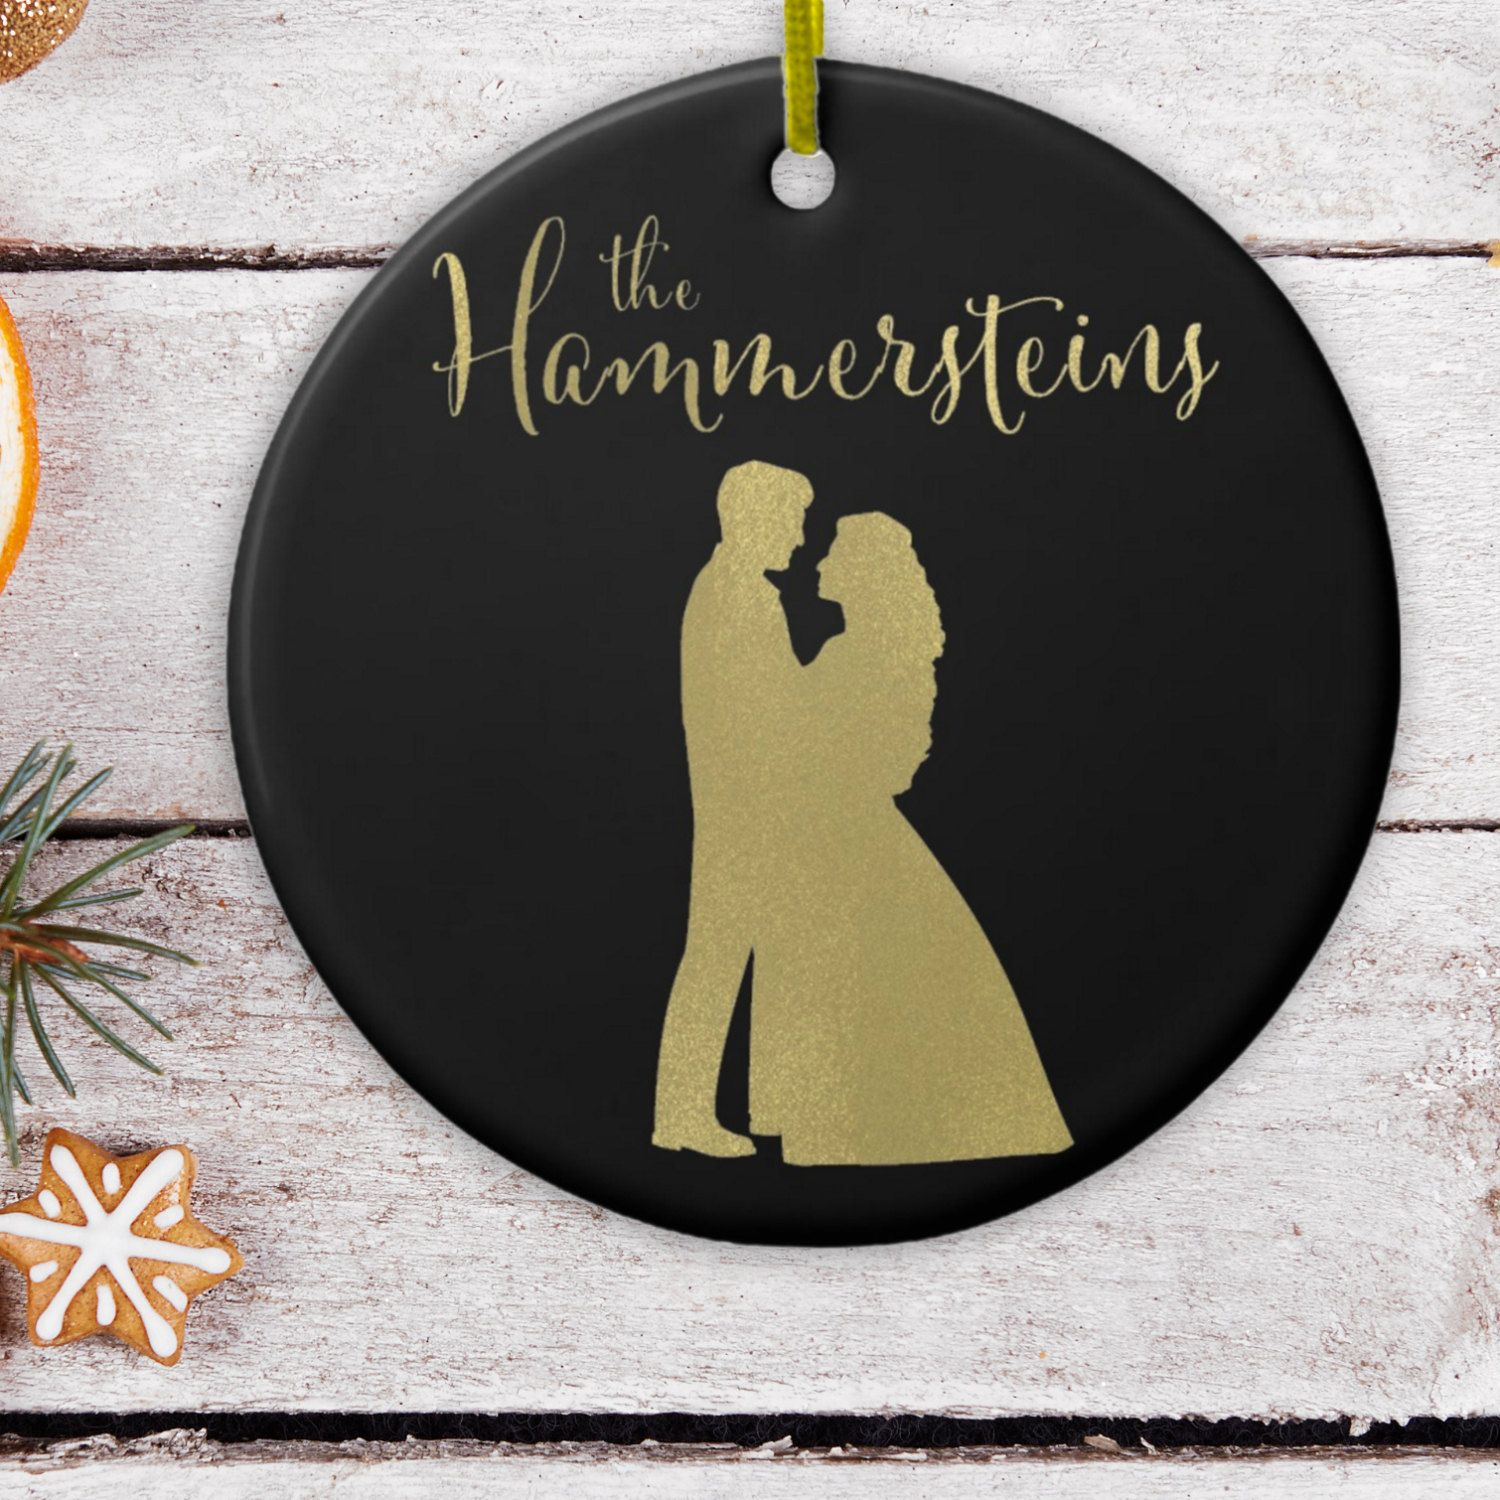 First married christmas ornament - Personalized Christmas Ornament With Couple Silhouette For Just Married Couple Keepsake First Married Christmas Ornament